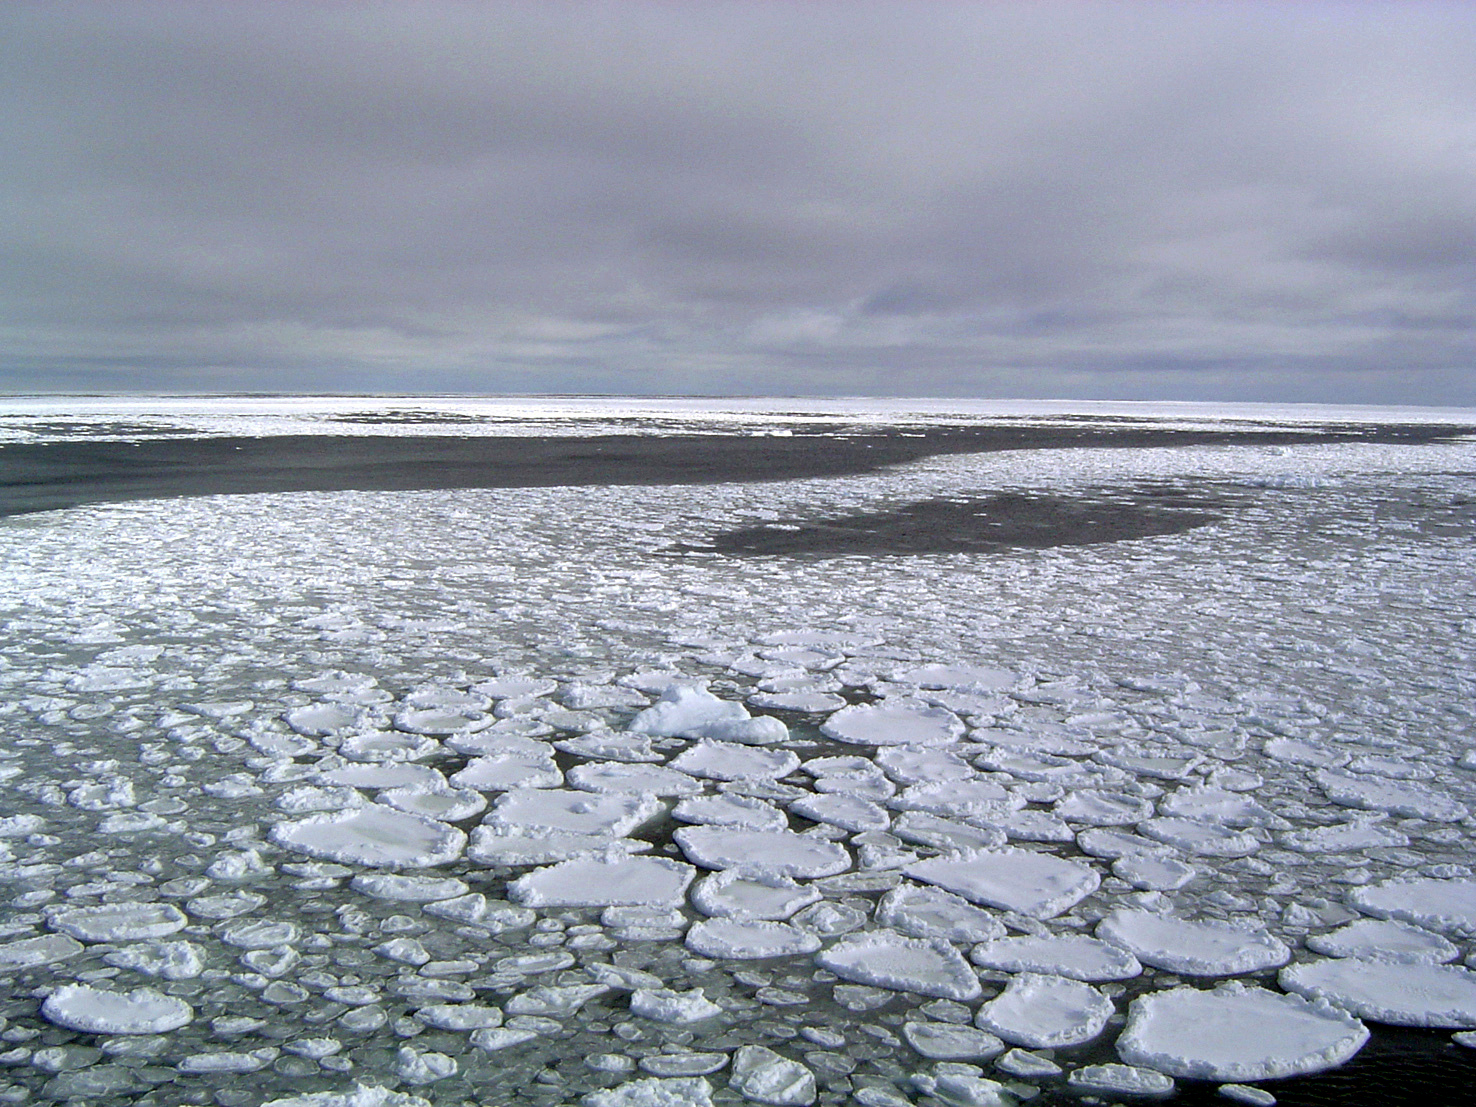 This January 2017 photo provided by Ted Scambos shows sea ice on the ocean surrounding Antarctica during an expedition to the Ross Sea. Ice in the ocean off the southern continent steadily increased from 1979 and hit a record high in 2014.